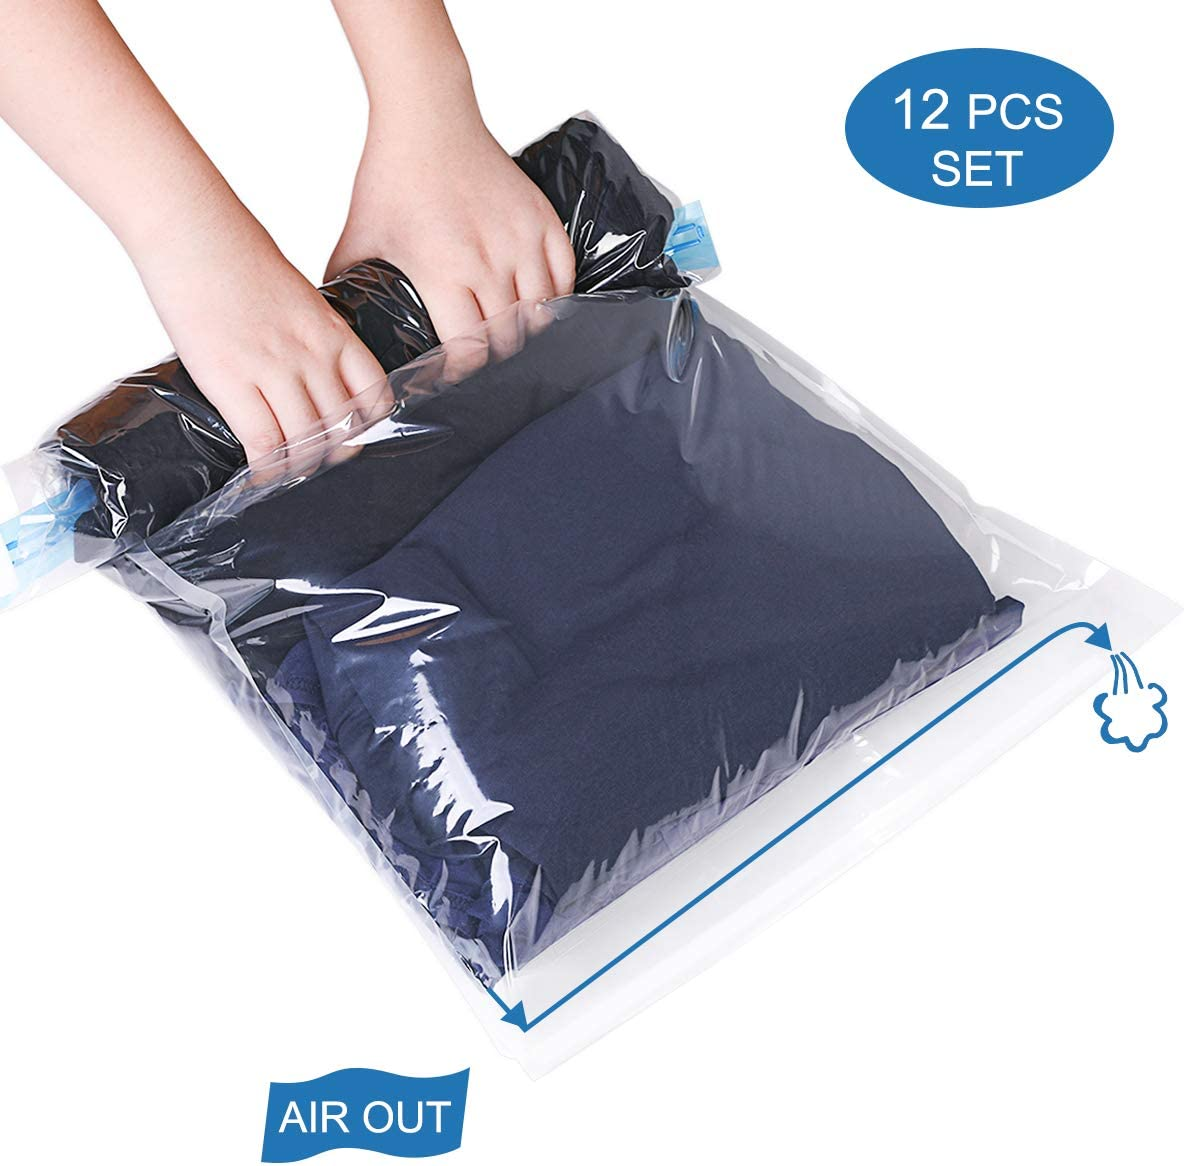 """HOMEIDEAS 12 Pack - 4X(28""""x20"""") + 8X(24""""x16"""") - Travel Space Saver Bags - Roll up Storage Bags for Clothes - Compression Bags for Travel - No Vacuum Needed - Save Space in Your Luggage"""